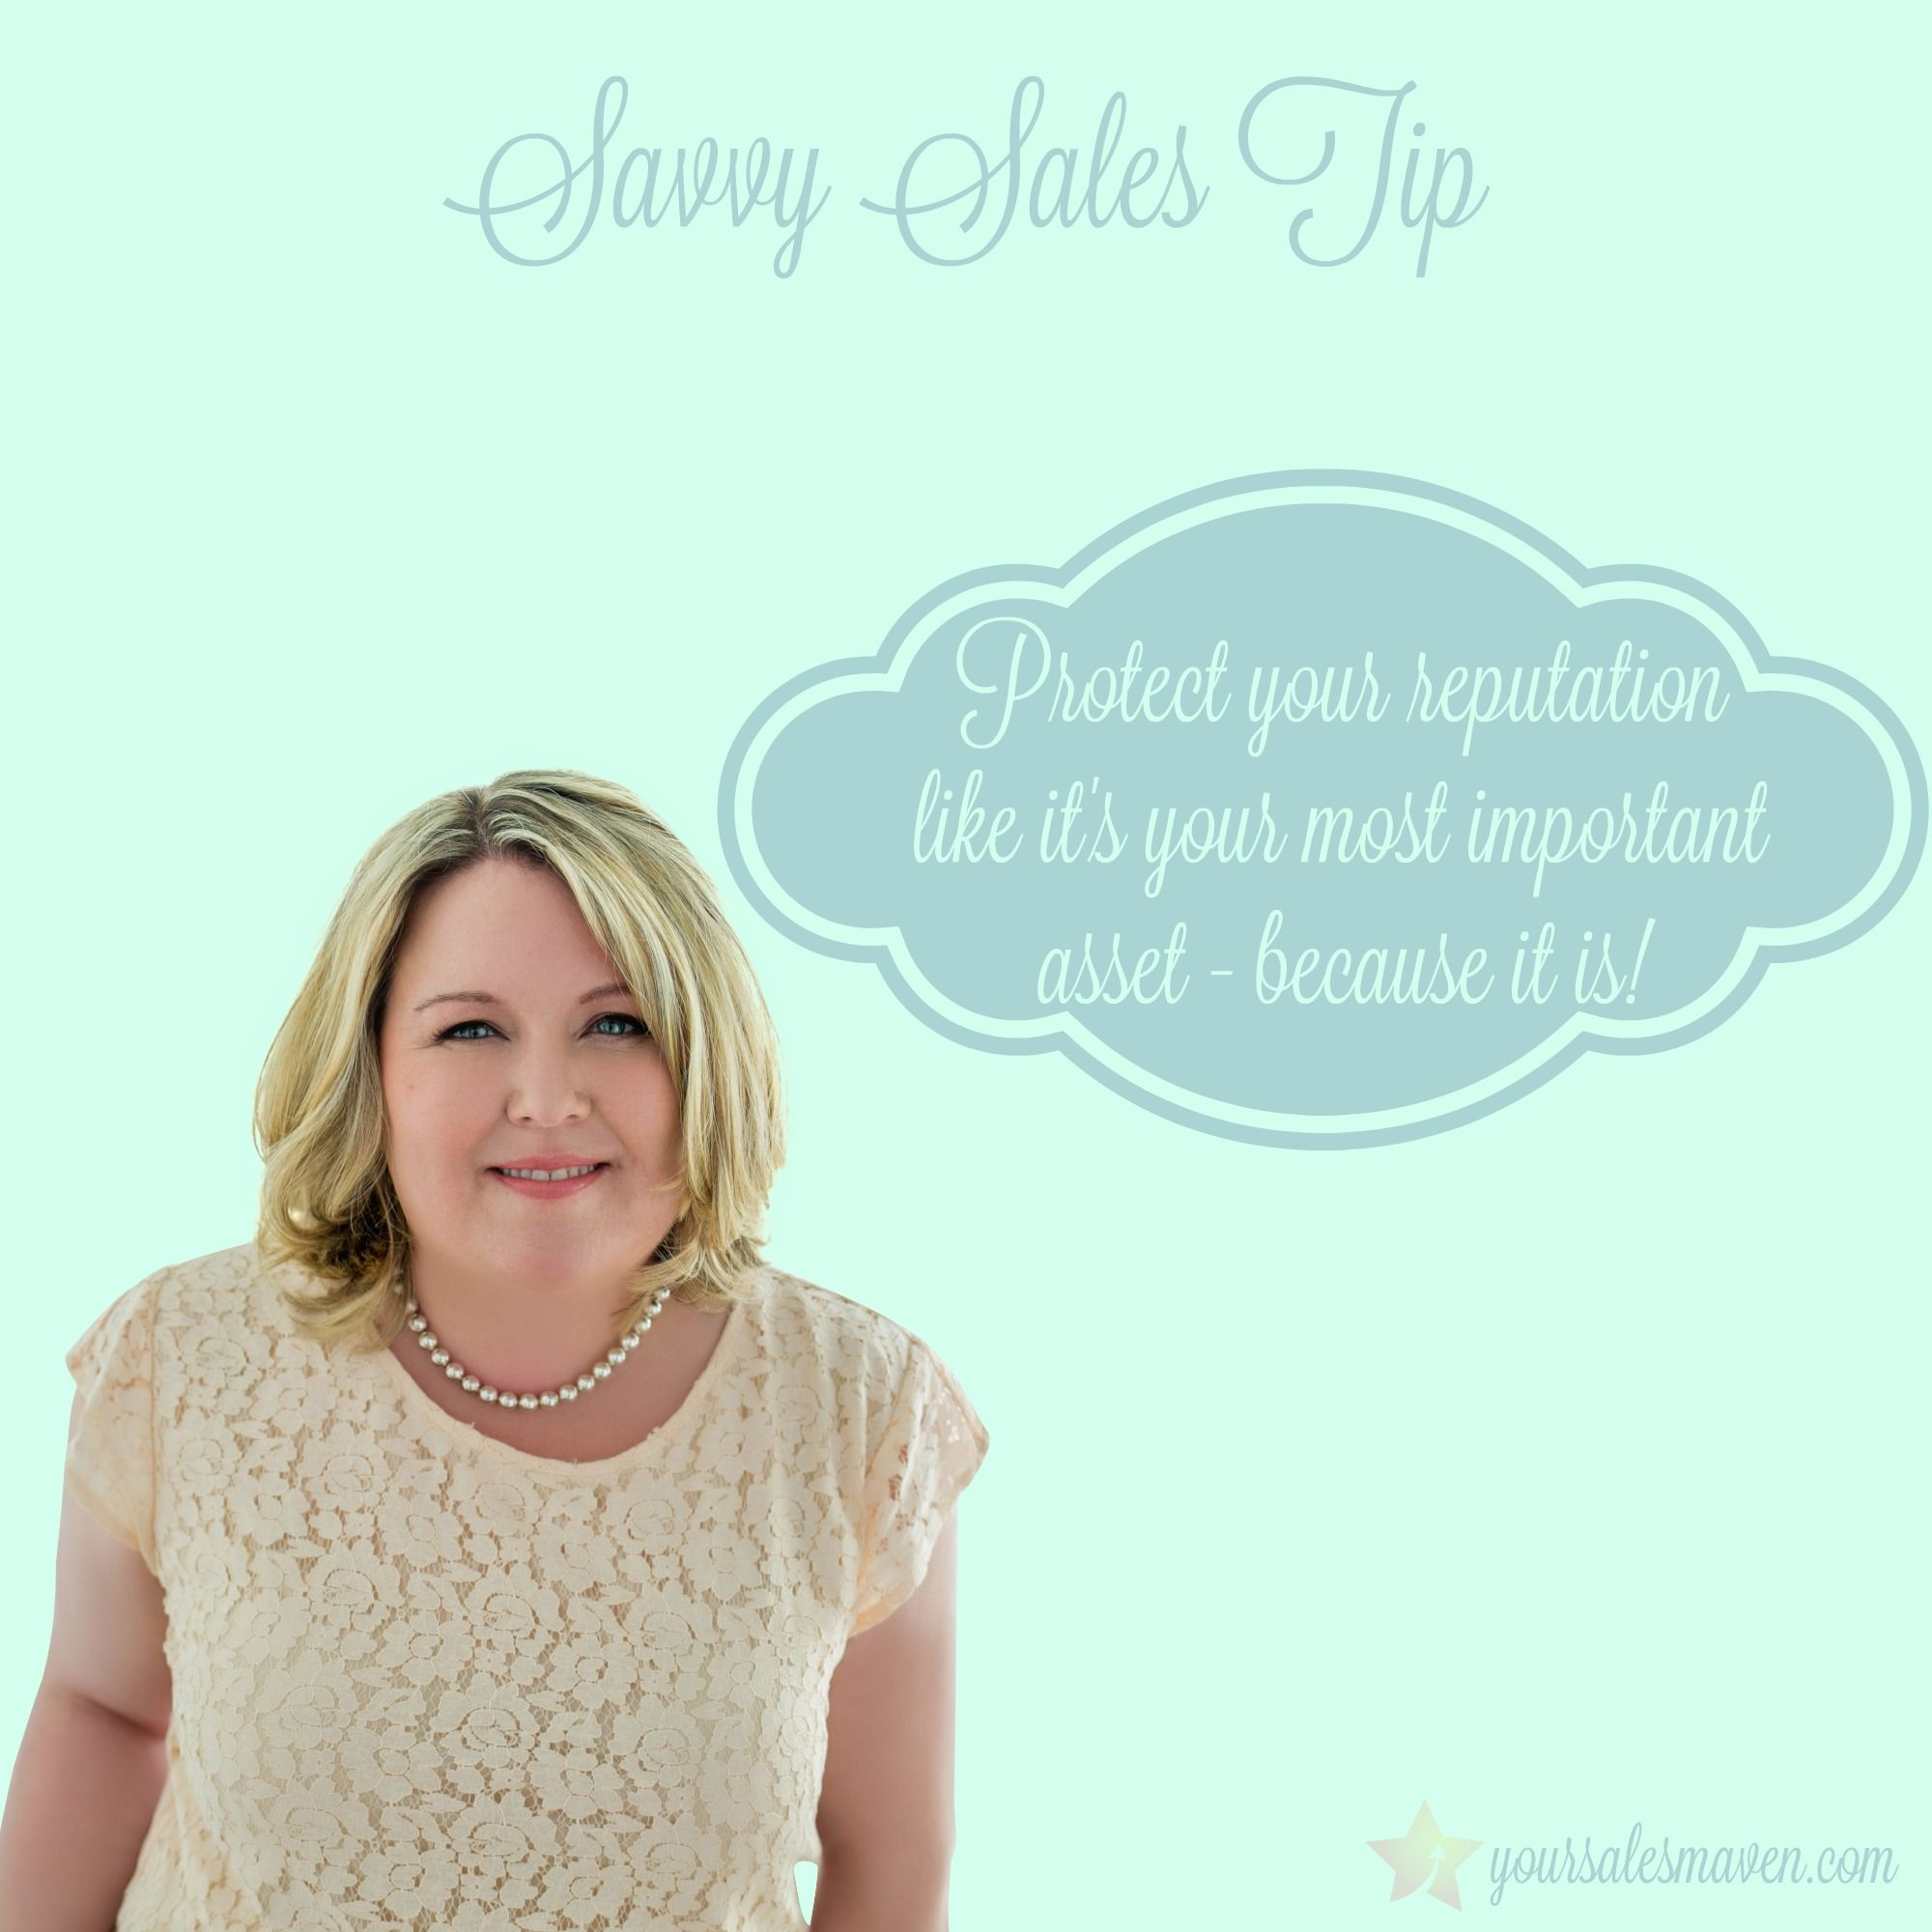 Savvy Sales Tip: Reputation